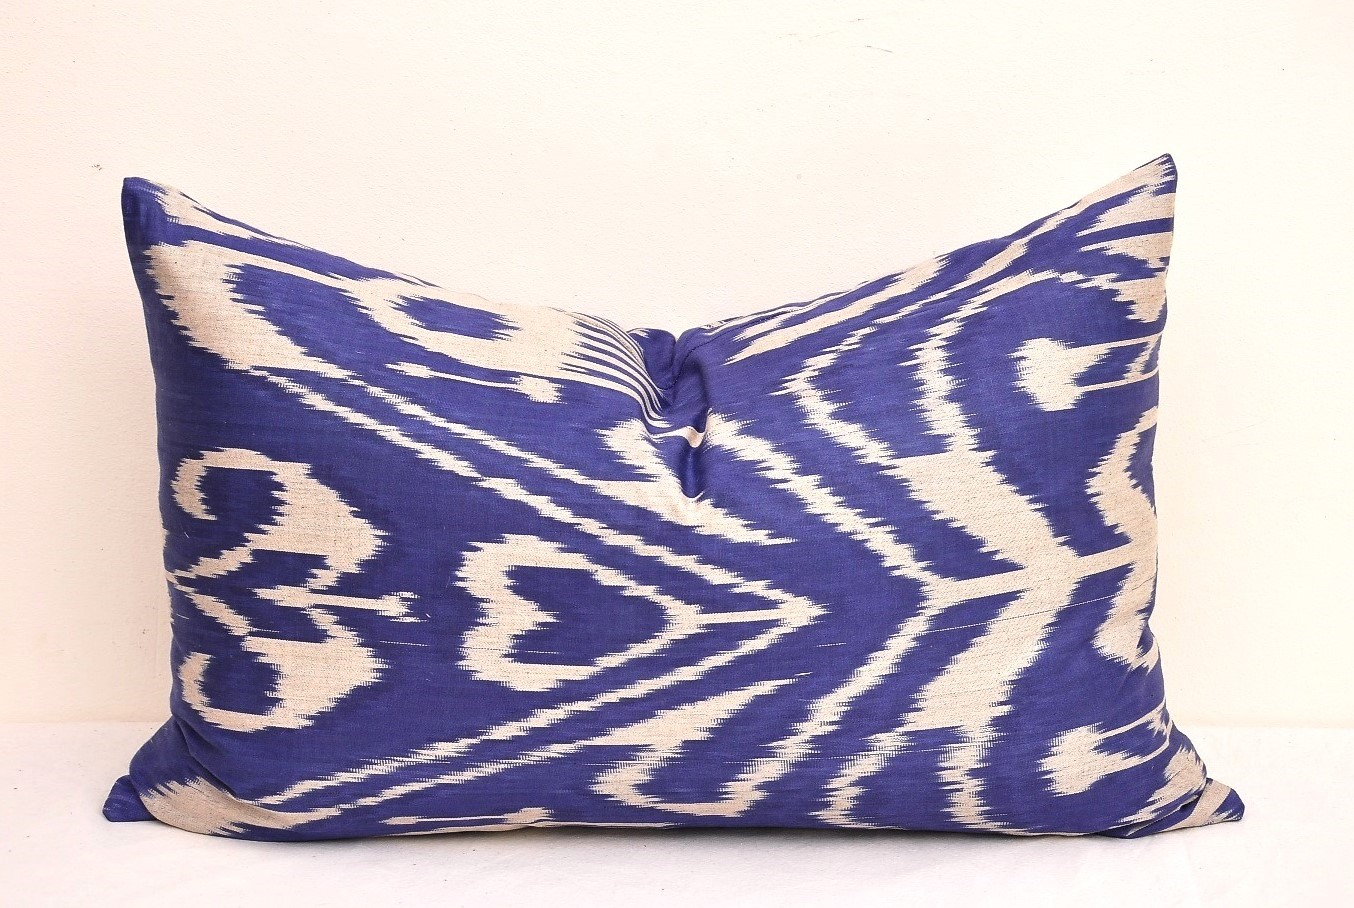 Blue Decorative Lumbar Throw Pillow - Alesouk Grand Bazaar online shopping